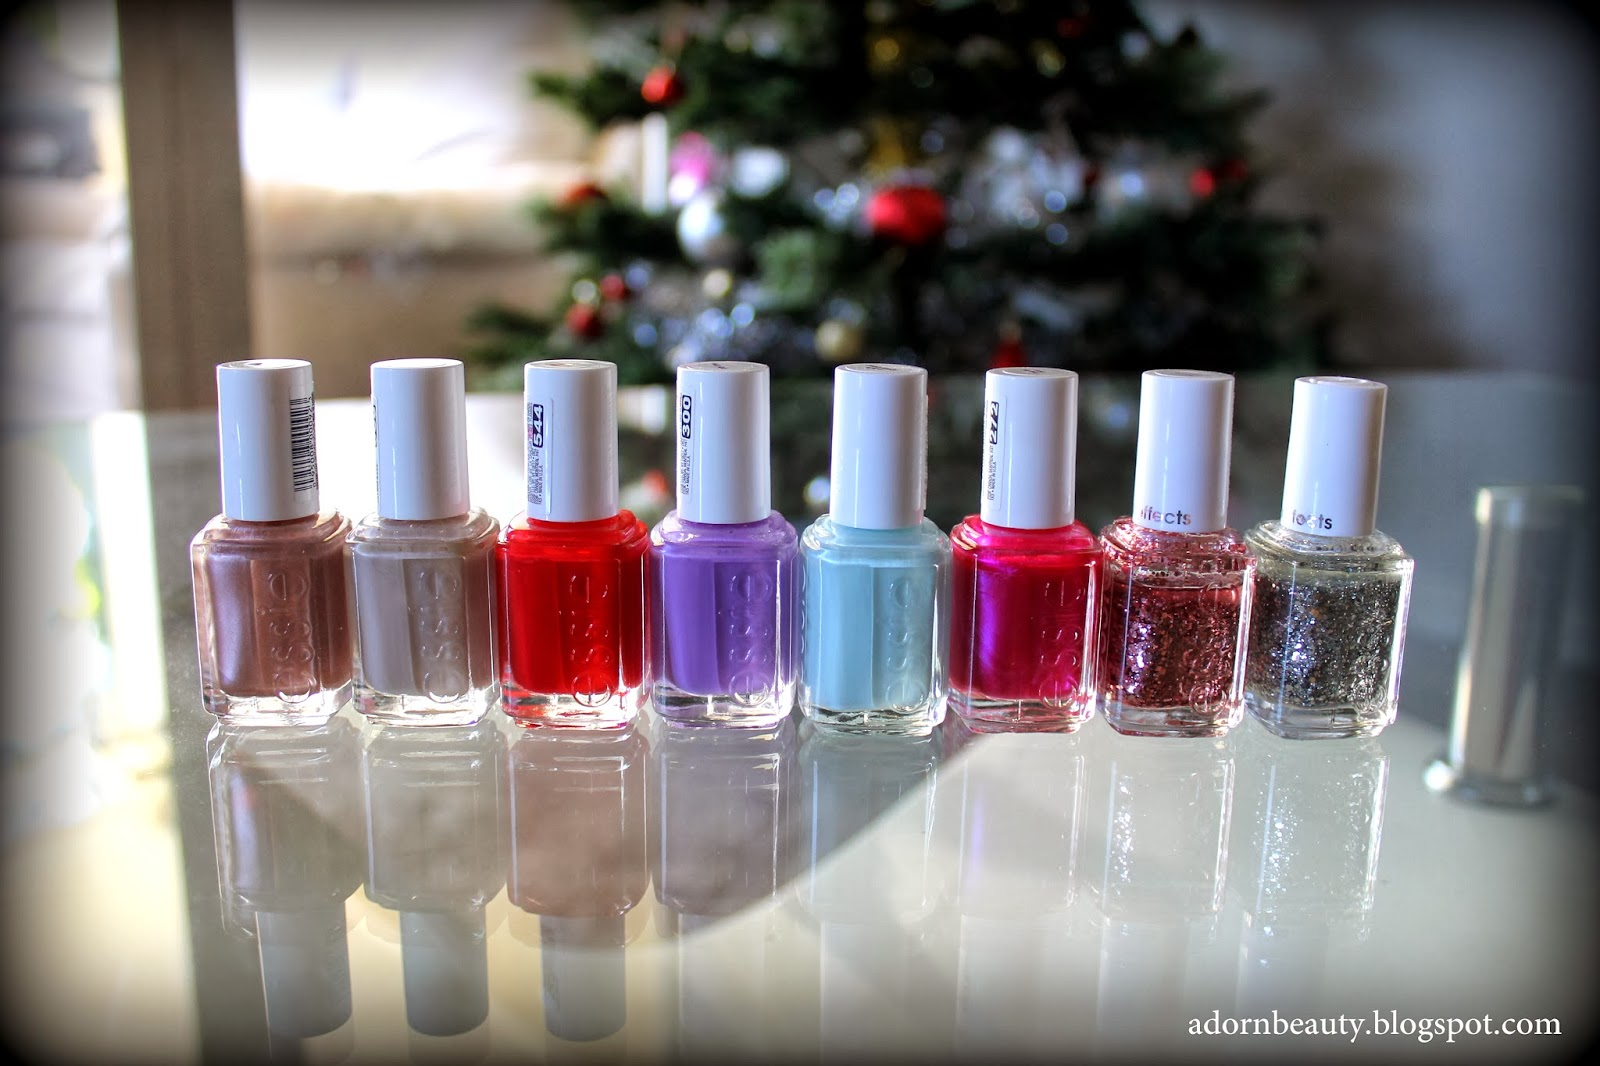 Adorn Beauty: My Essie Nail Polish Collection